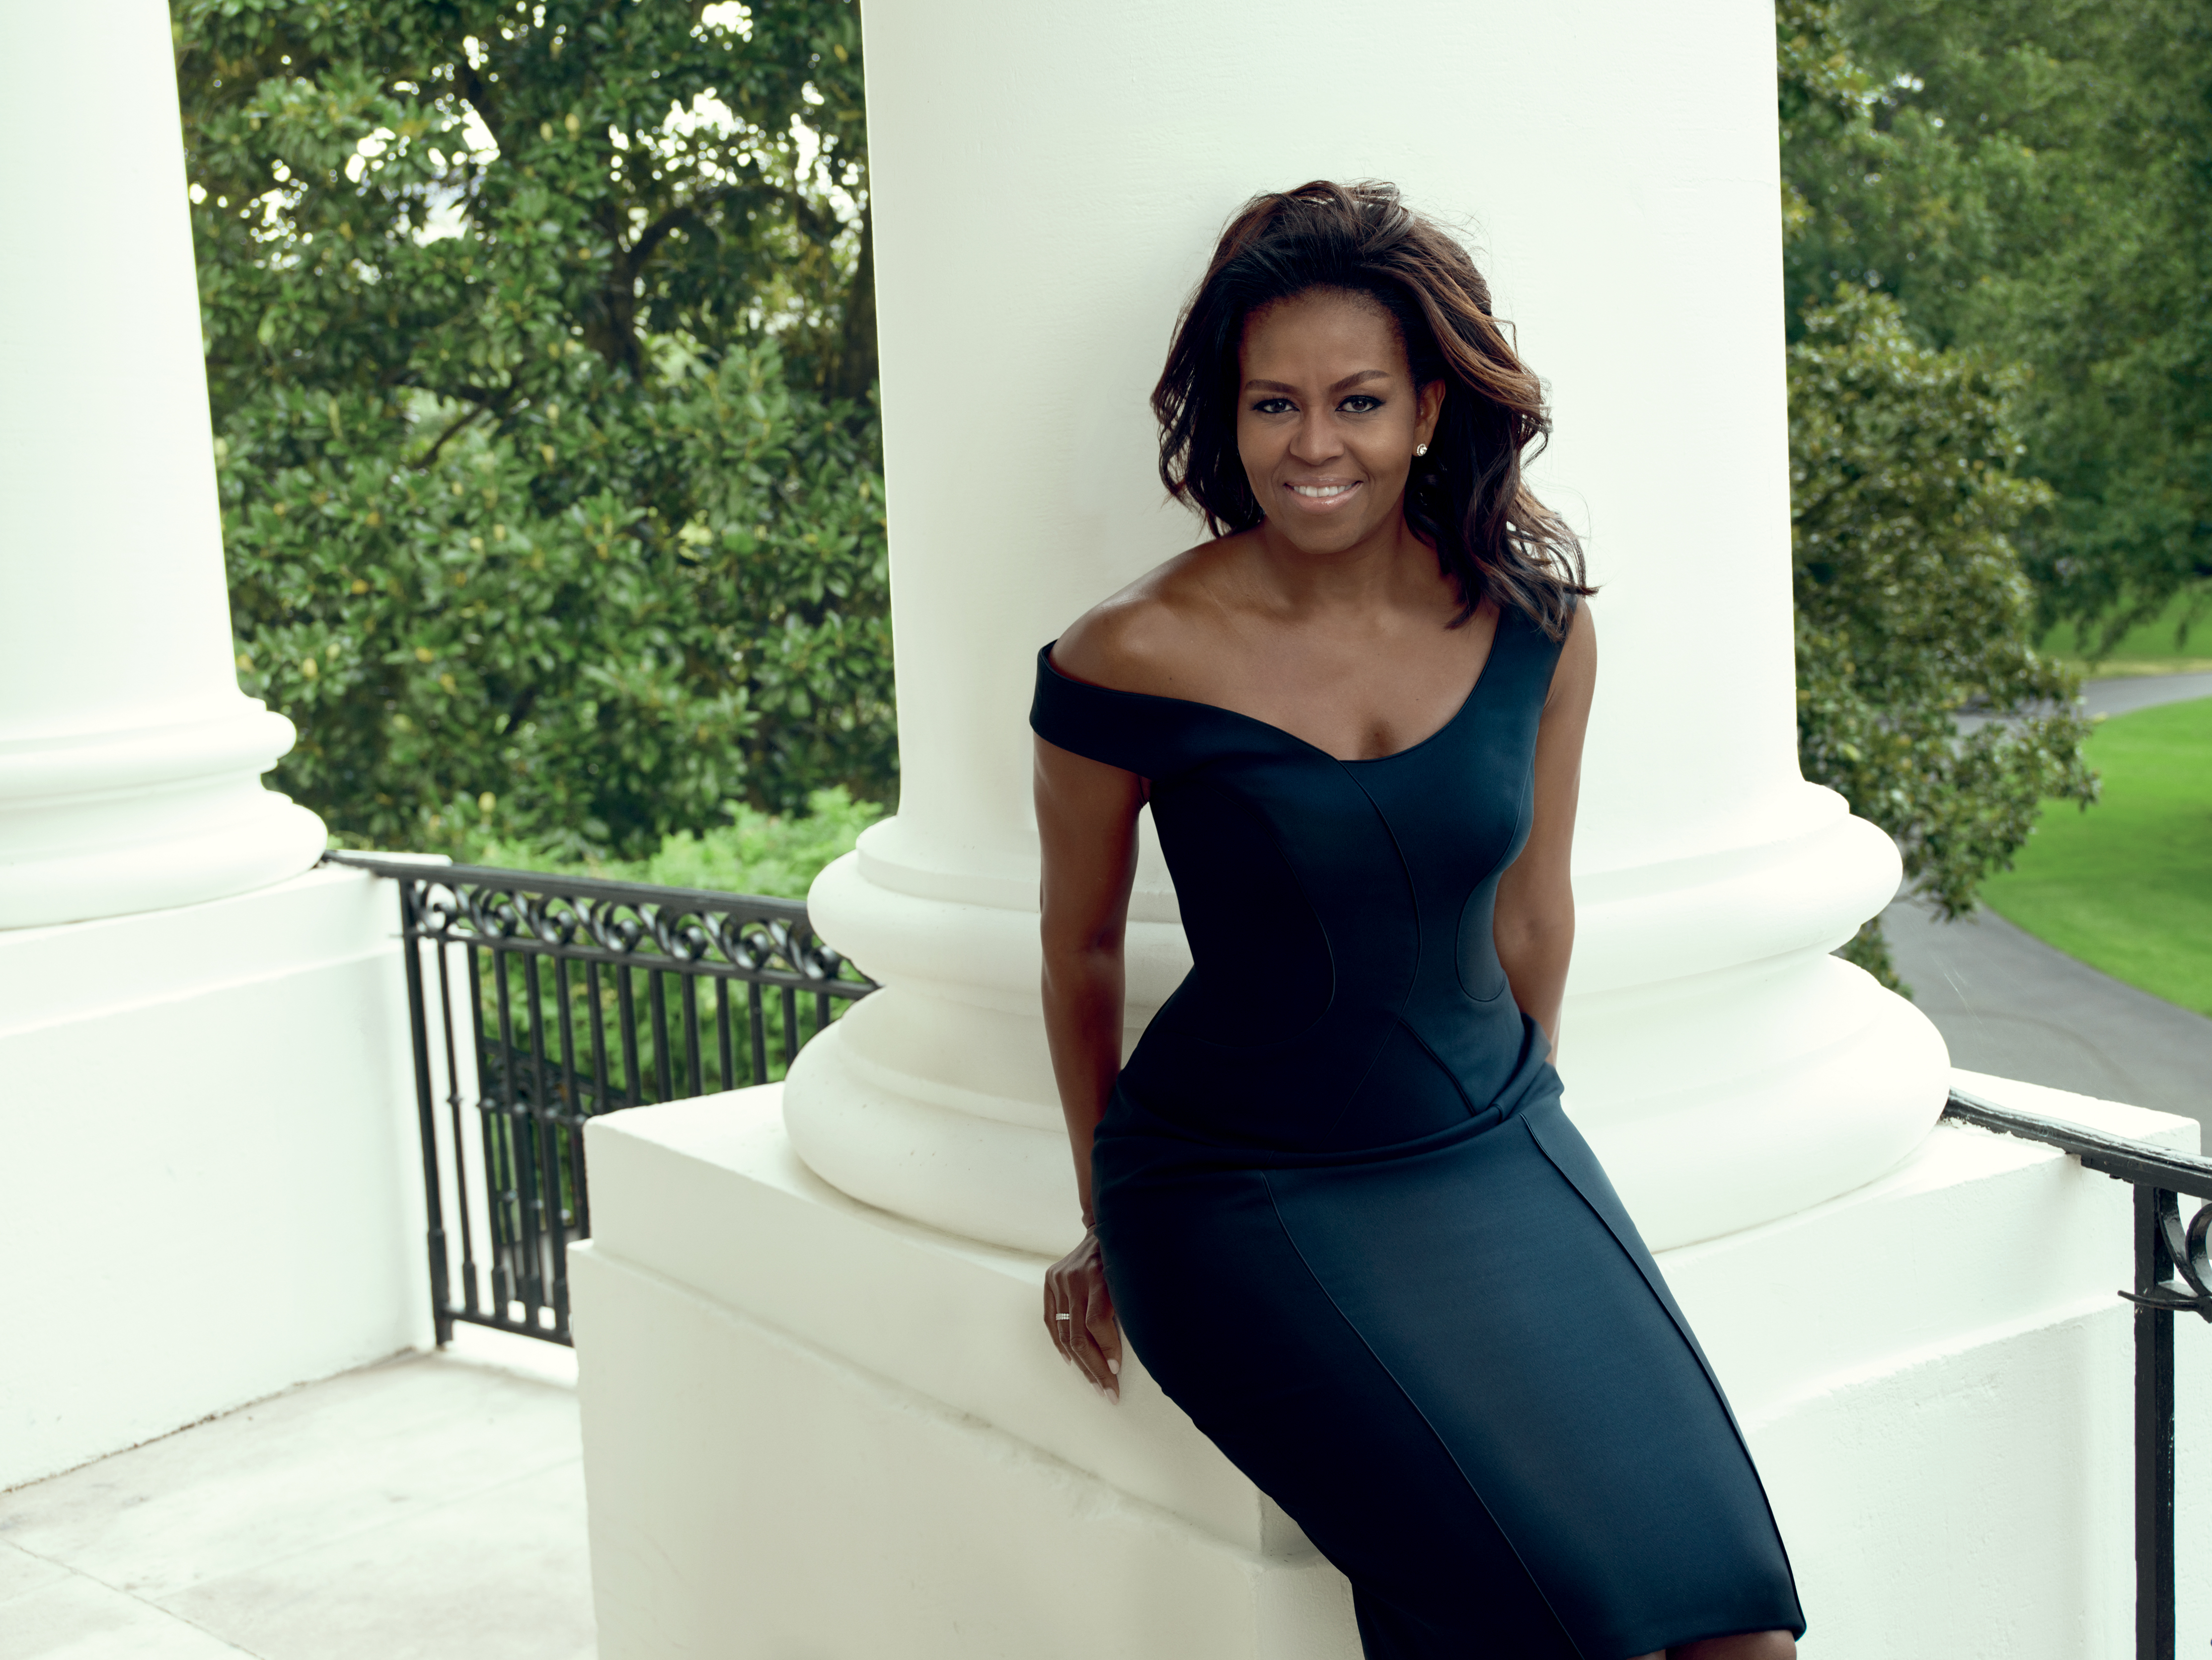 Michelle Obama in the December 2016 issue of Vogue